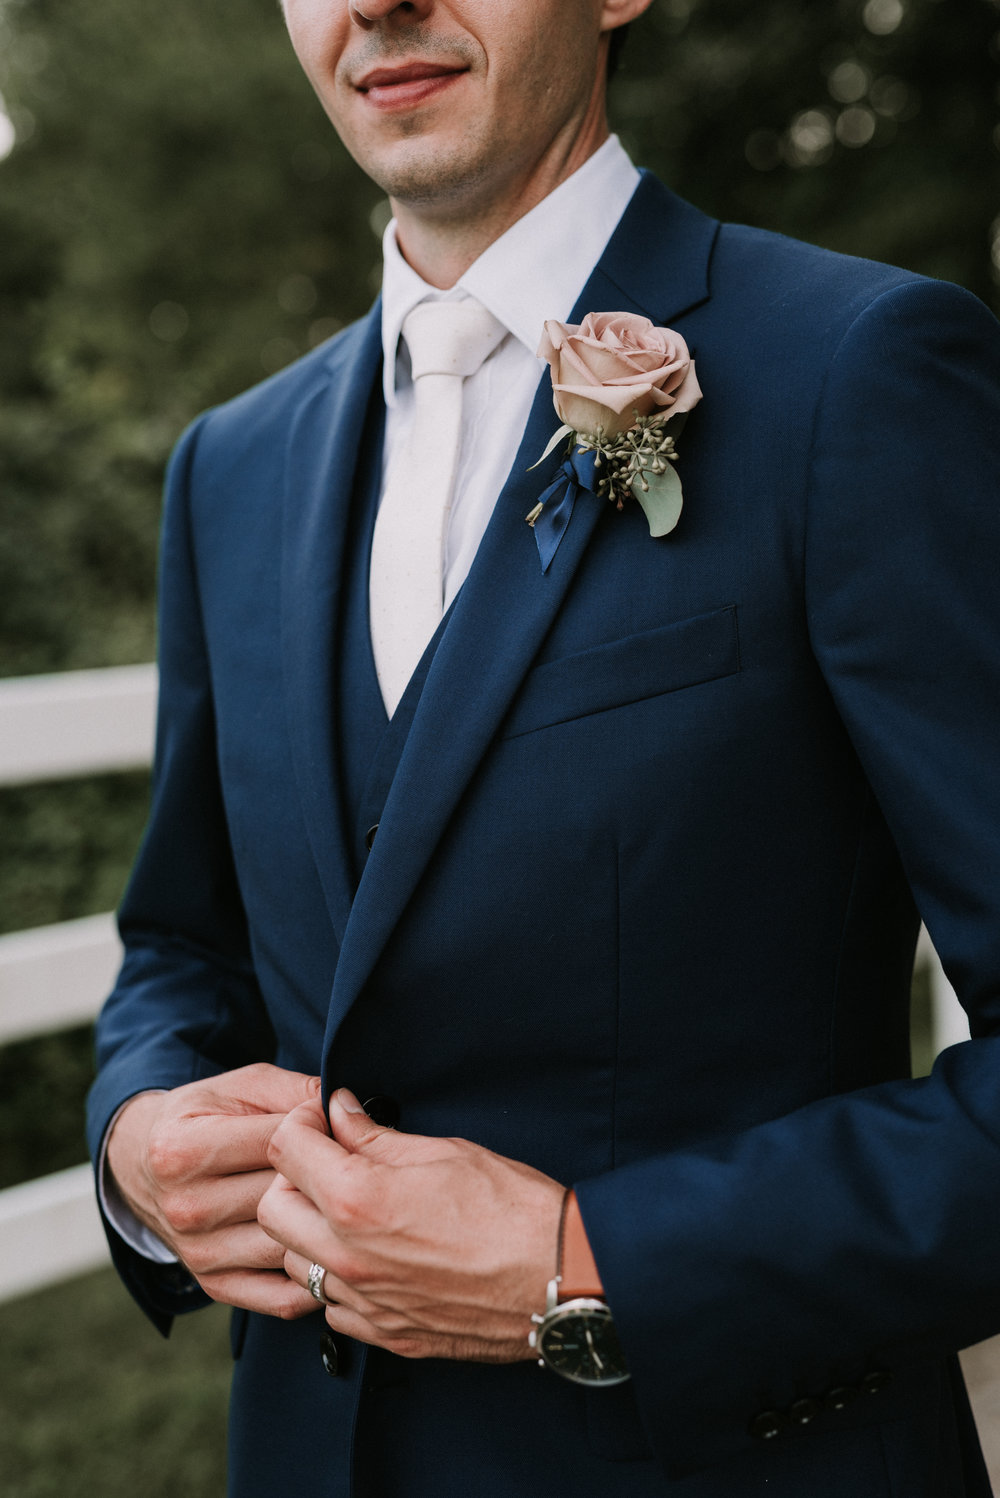 Seth is wearing a 'Amnesia' Rose Boutonniere with a backing of Eucalyptus greenery.